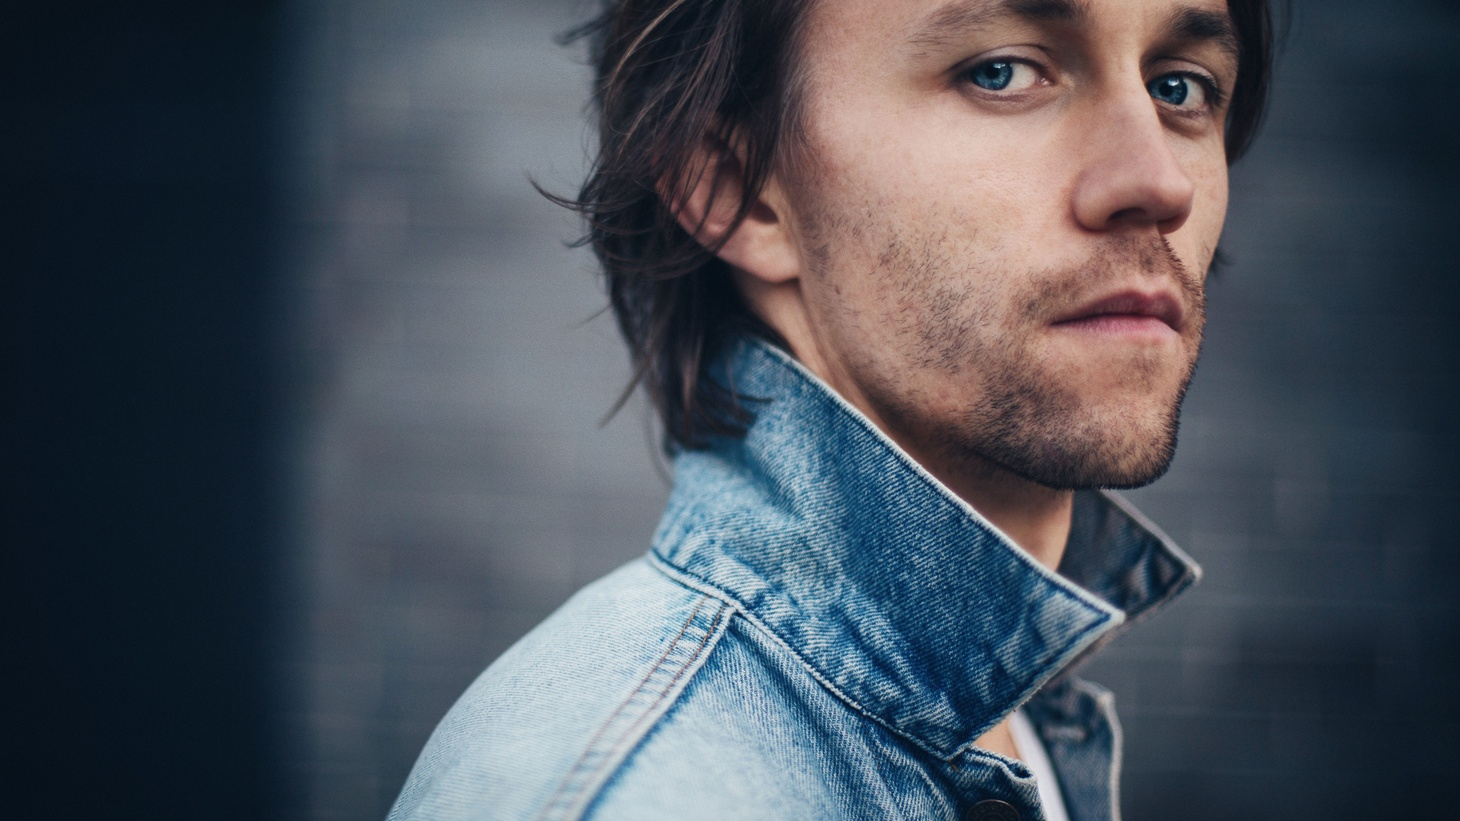 Brooklyn-based Norwegian singer/songwriter  Sondre Lerche  is an artist we've championed through the years. Lerche has a knack for translating his woes into swoon-worthy songs.